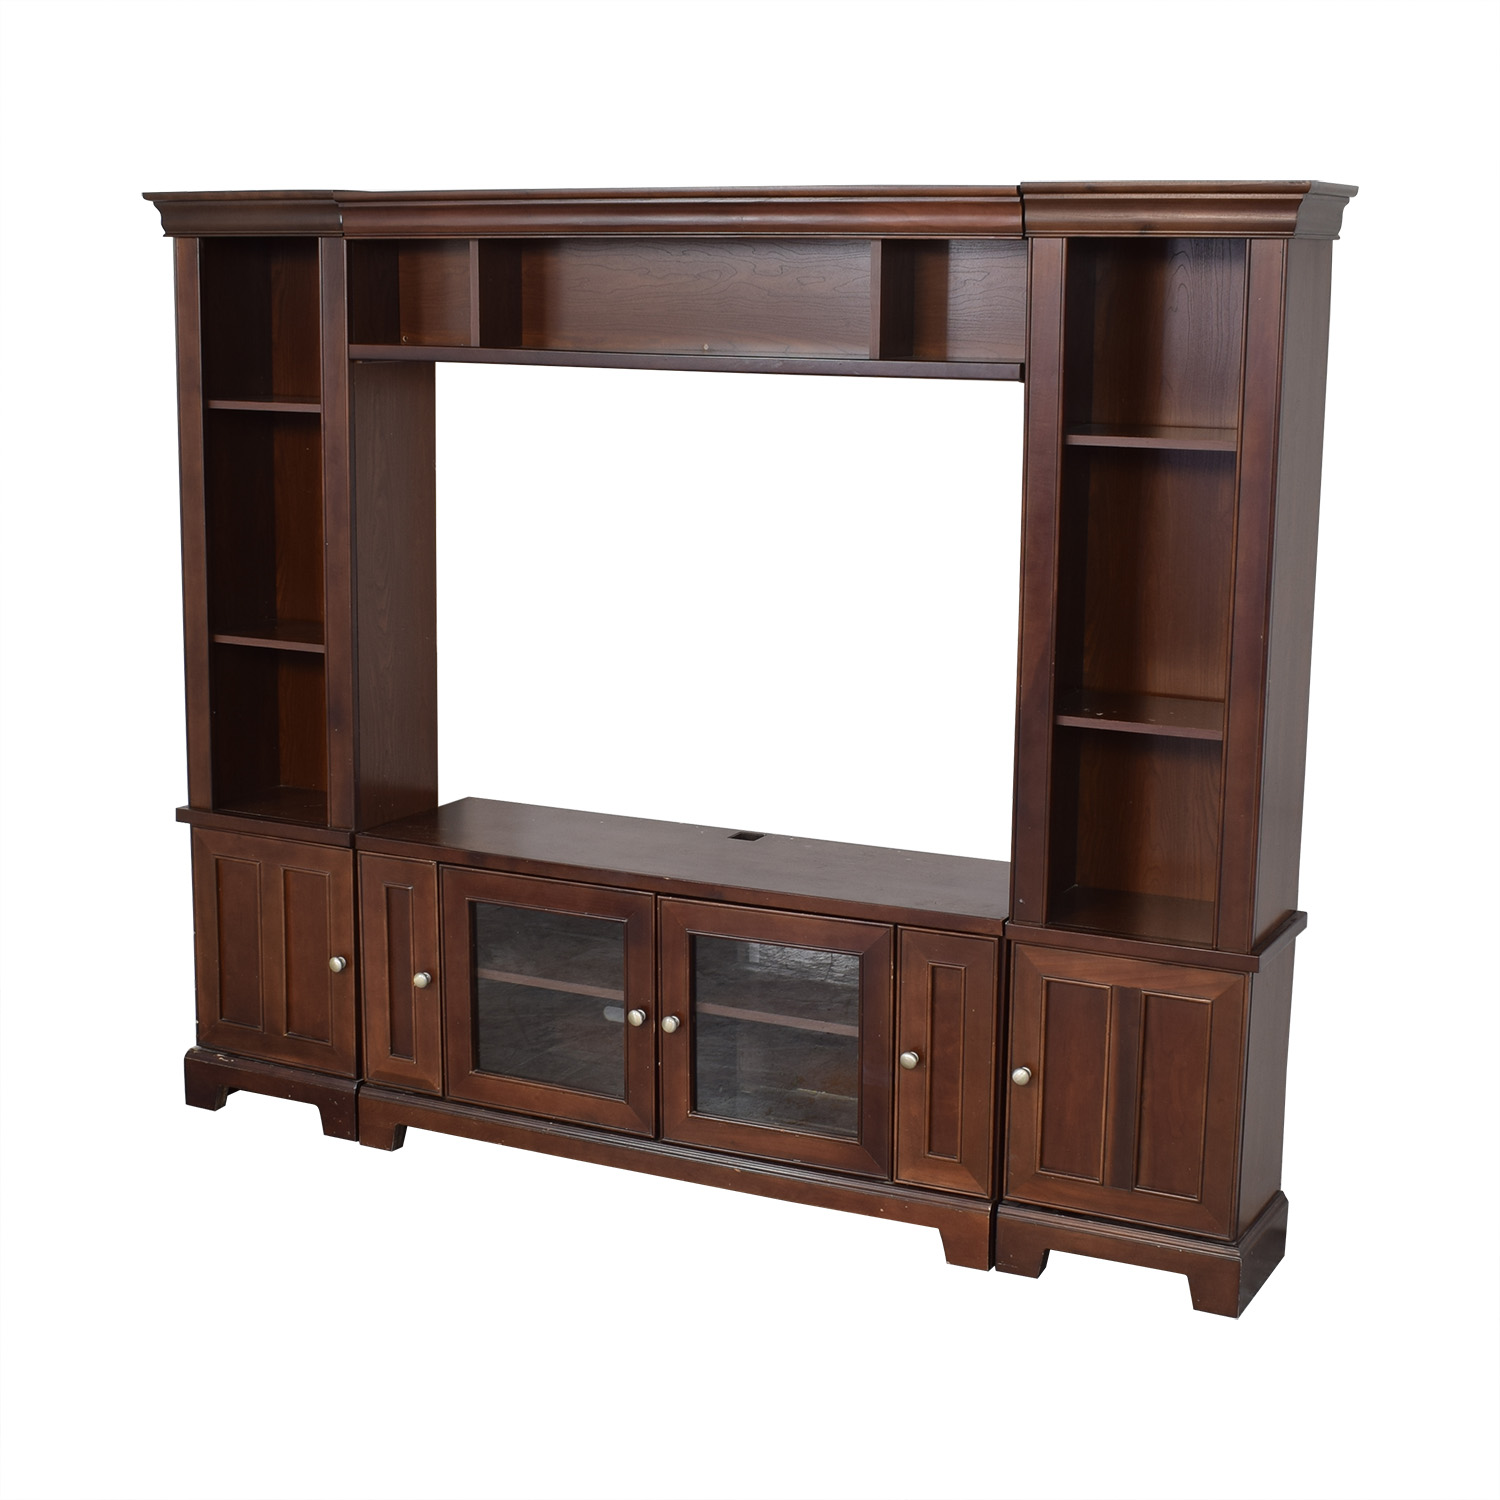 Entertainment Center with Cabinets brown